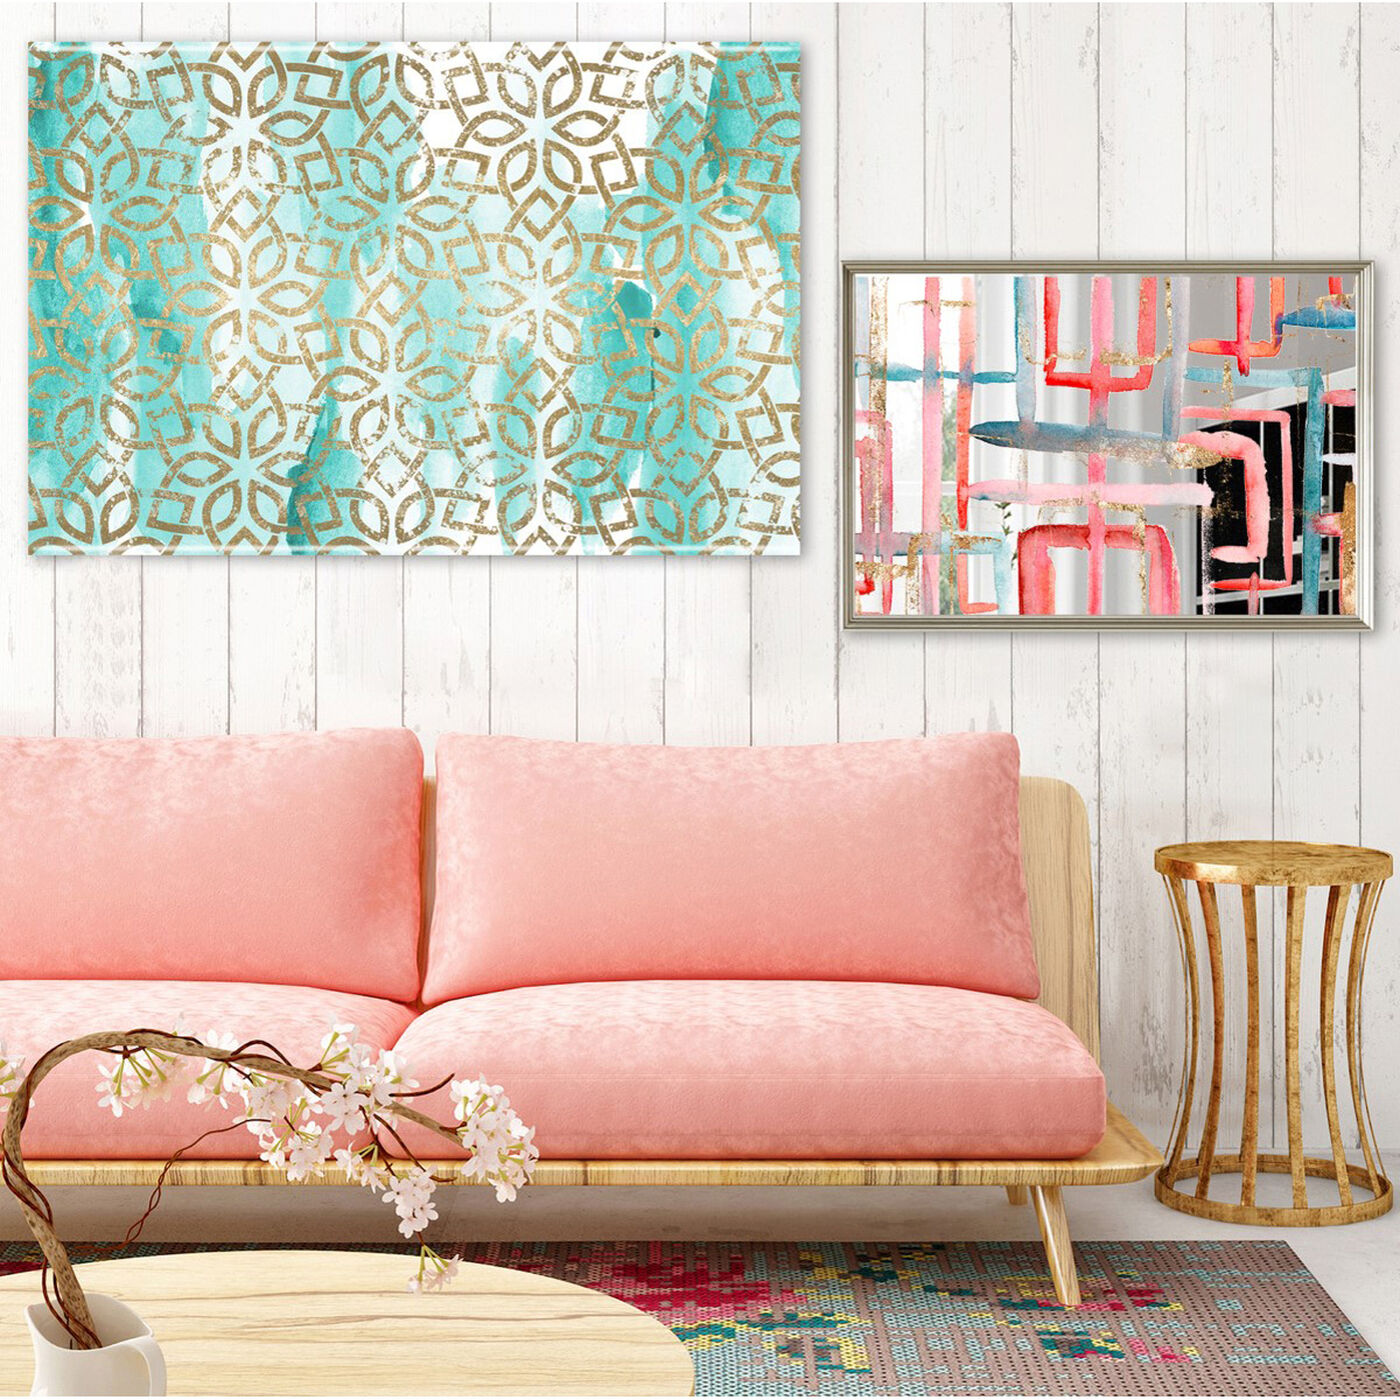 Hanging view of Golden Window featuring abstract and paint art.